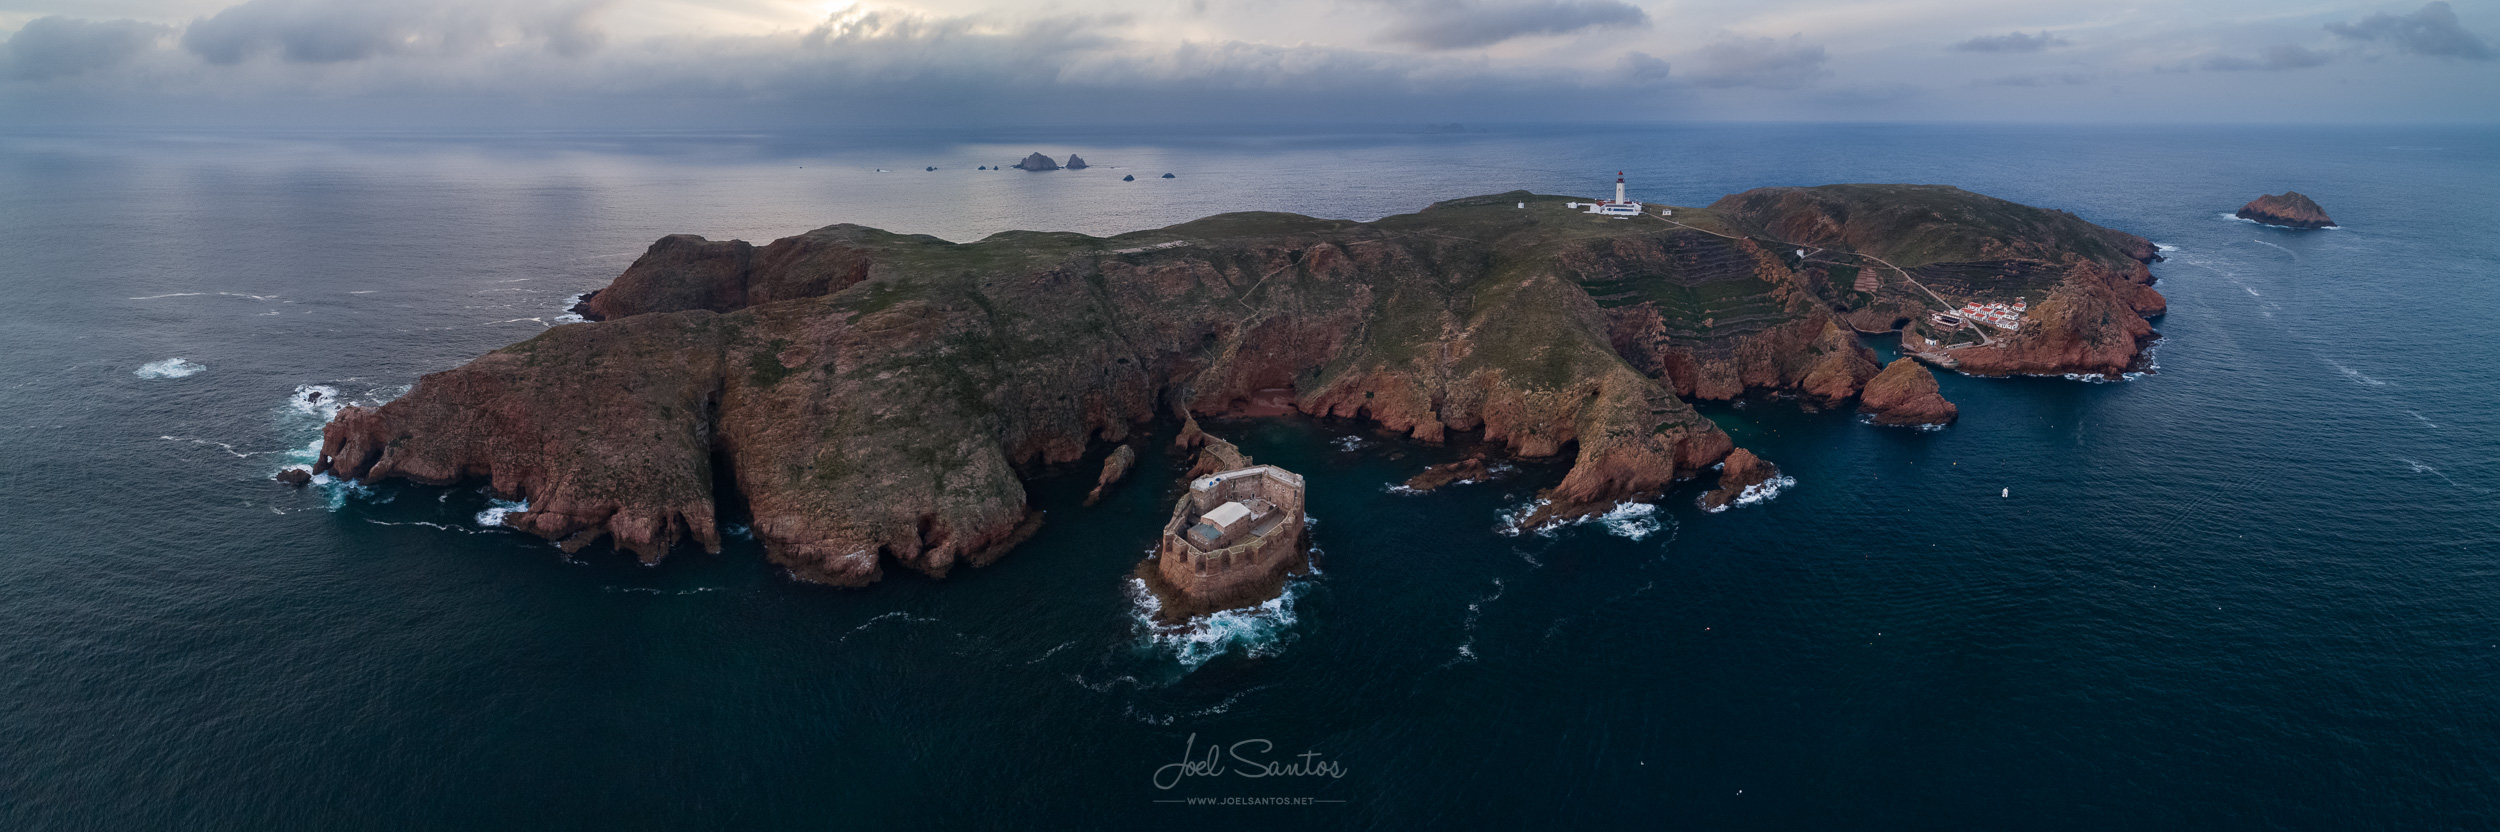 Berlengas islands, Portugal